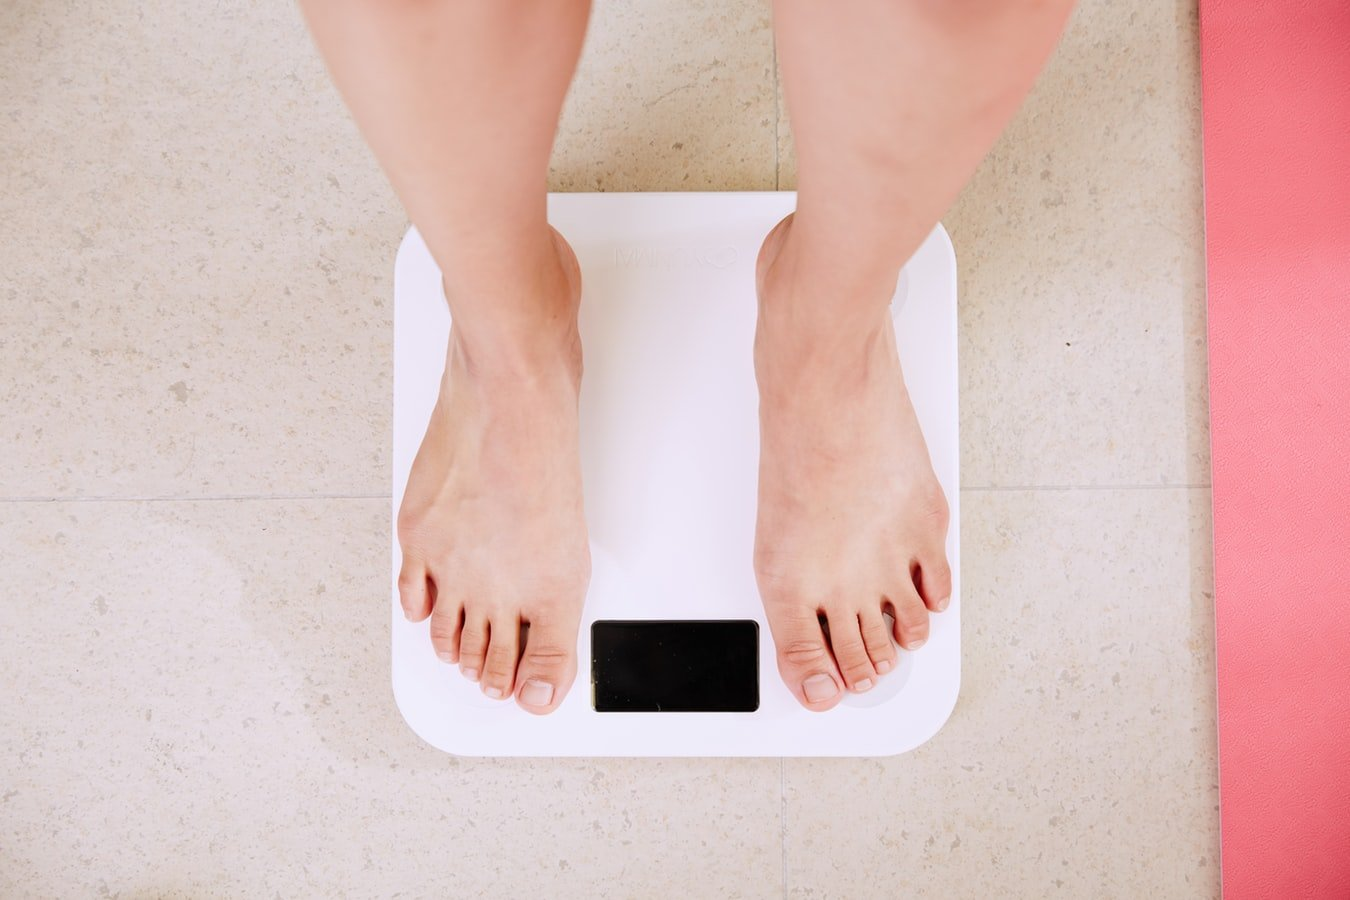 weight loss obesity right weight center